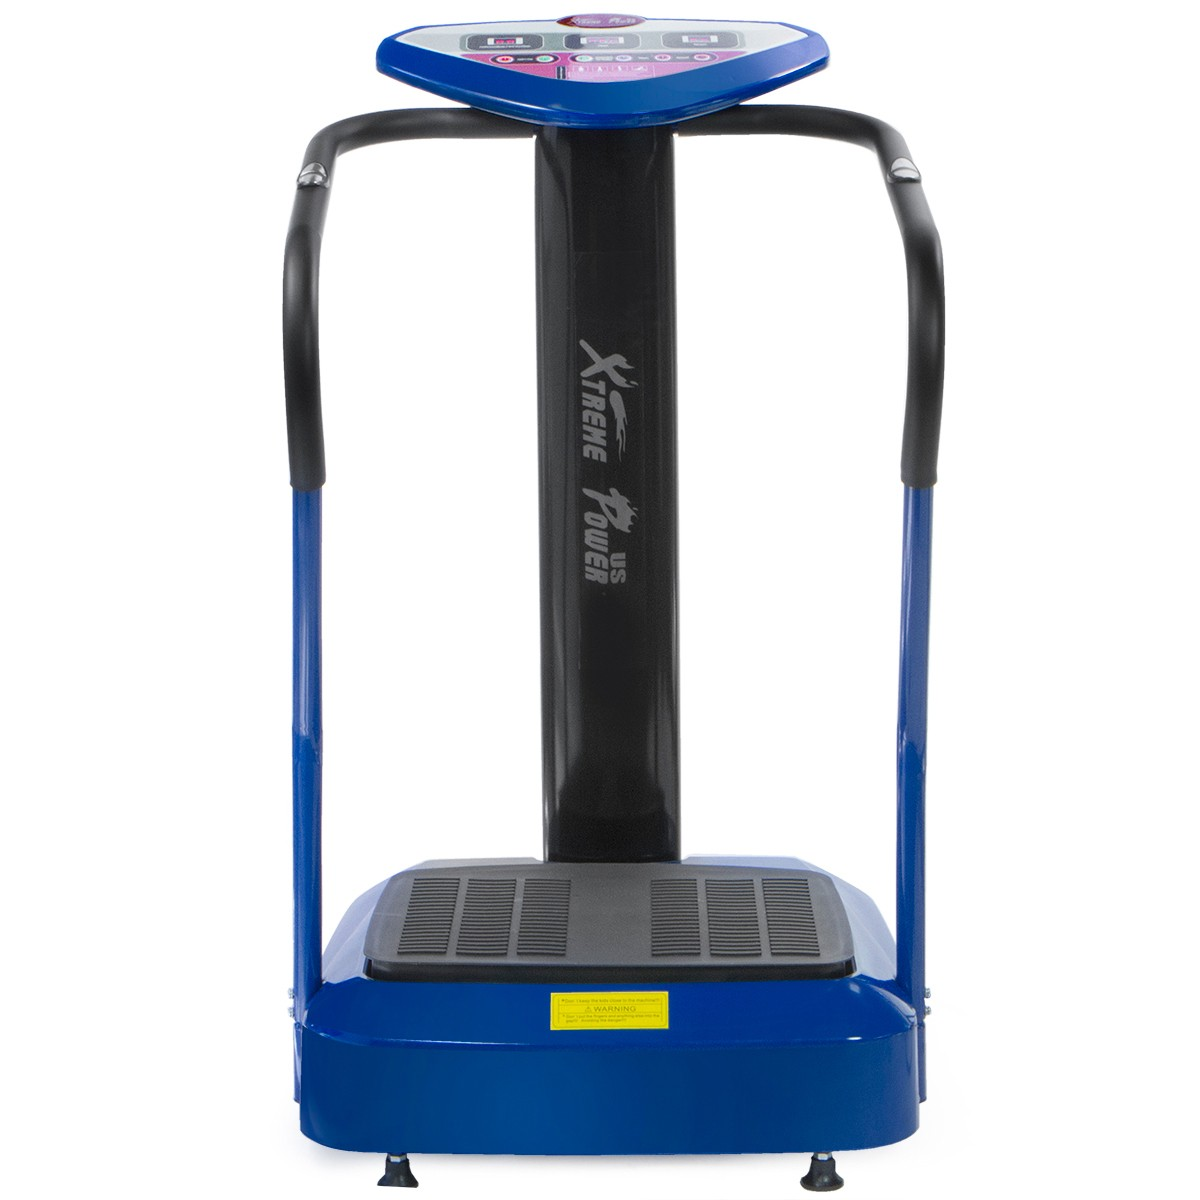 XtremepowerUS 2000W Crazy Fit Fitness Whole Body Vibration Plate Exercise Massage Machine Blue